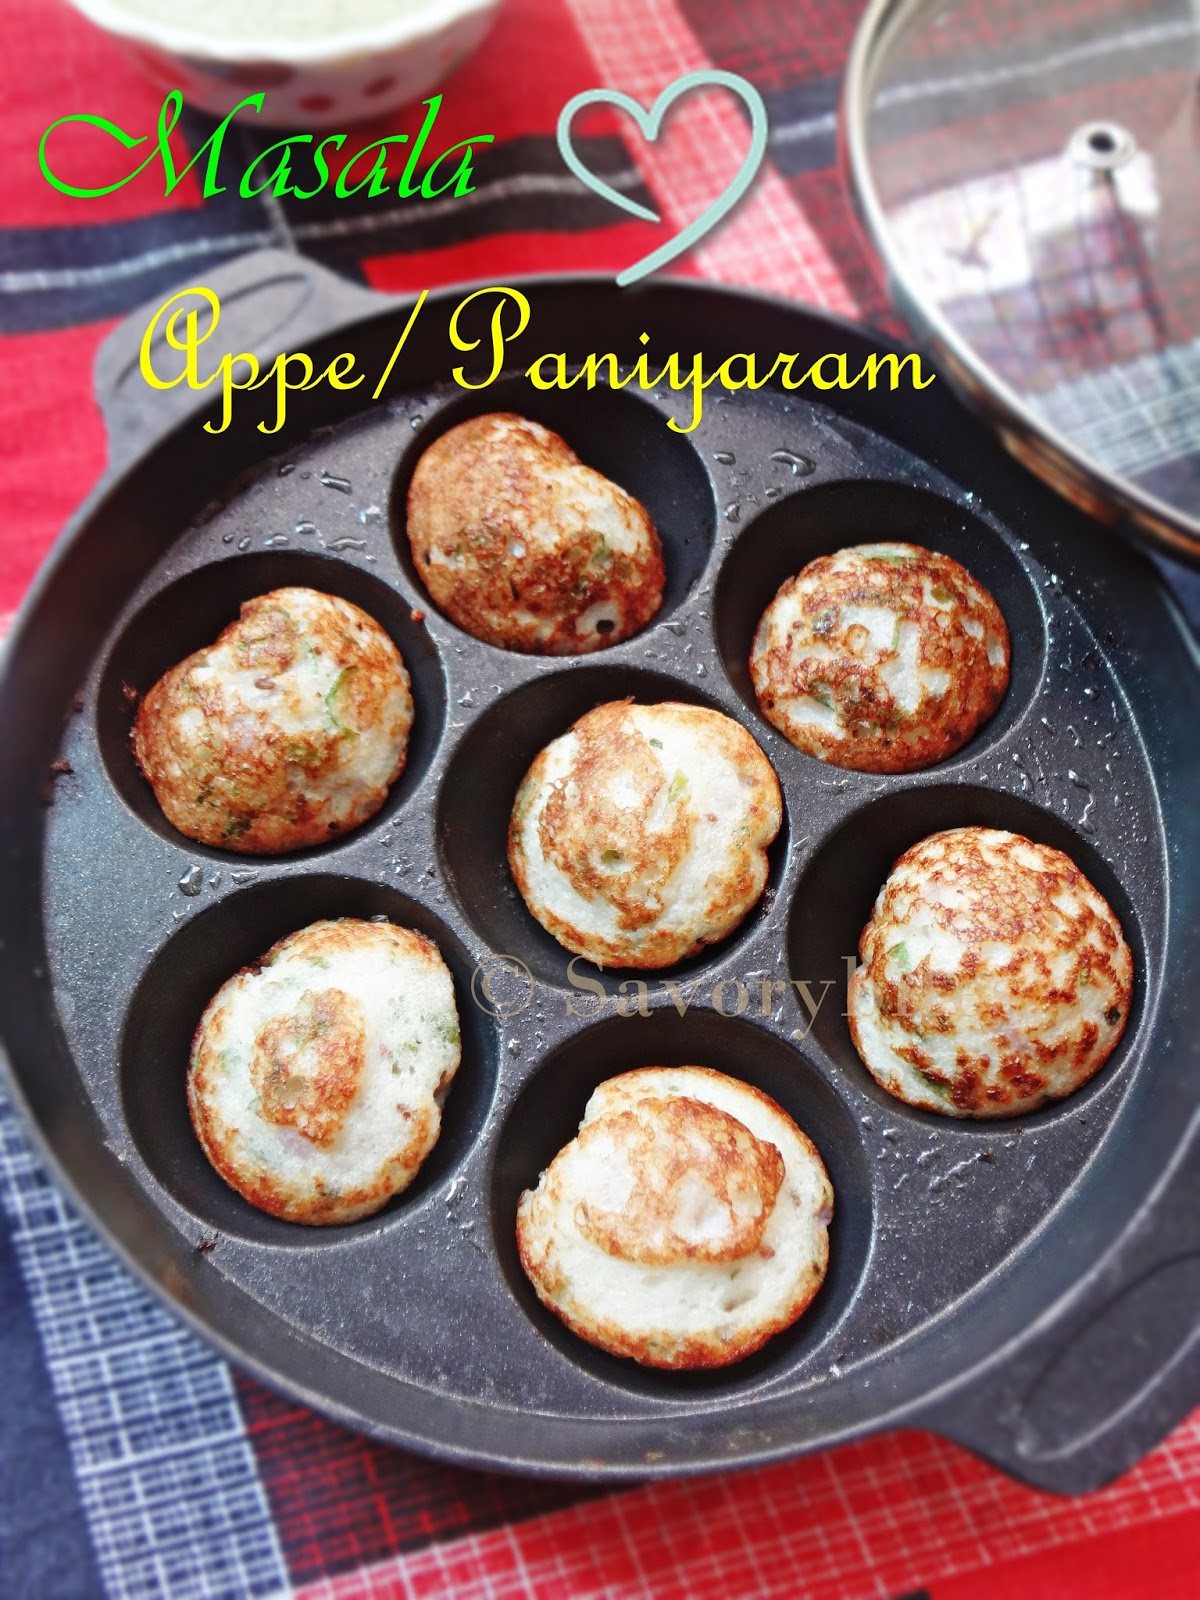 Masala Appe Paniyaram South Indian Breakfast Indian Vegetarian